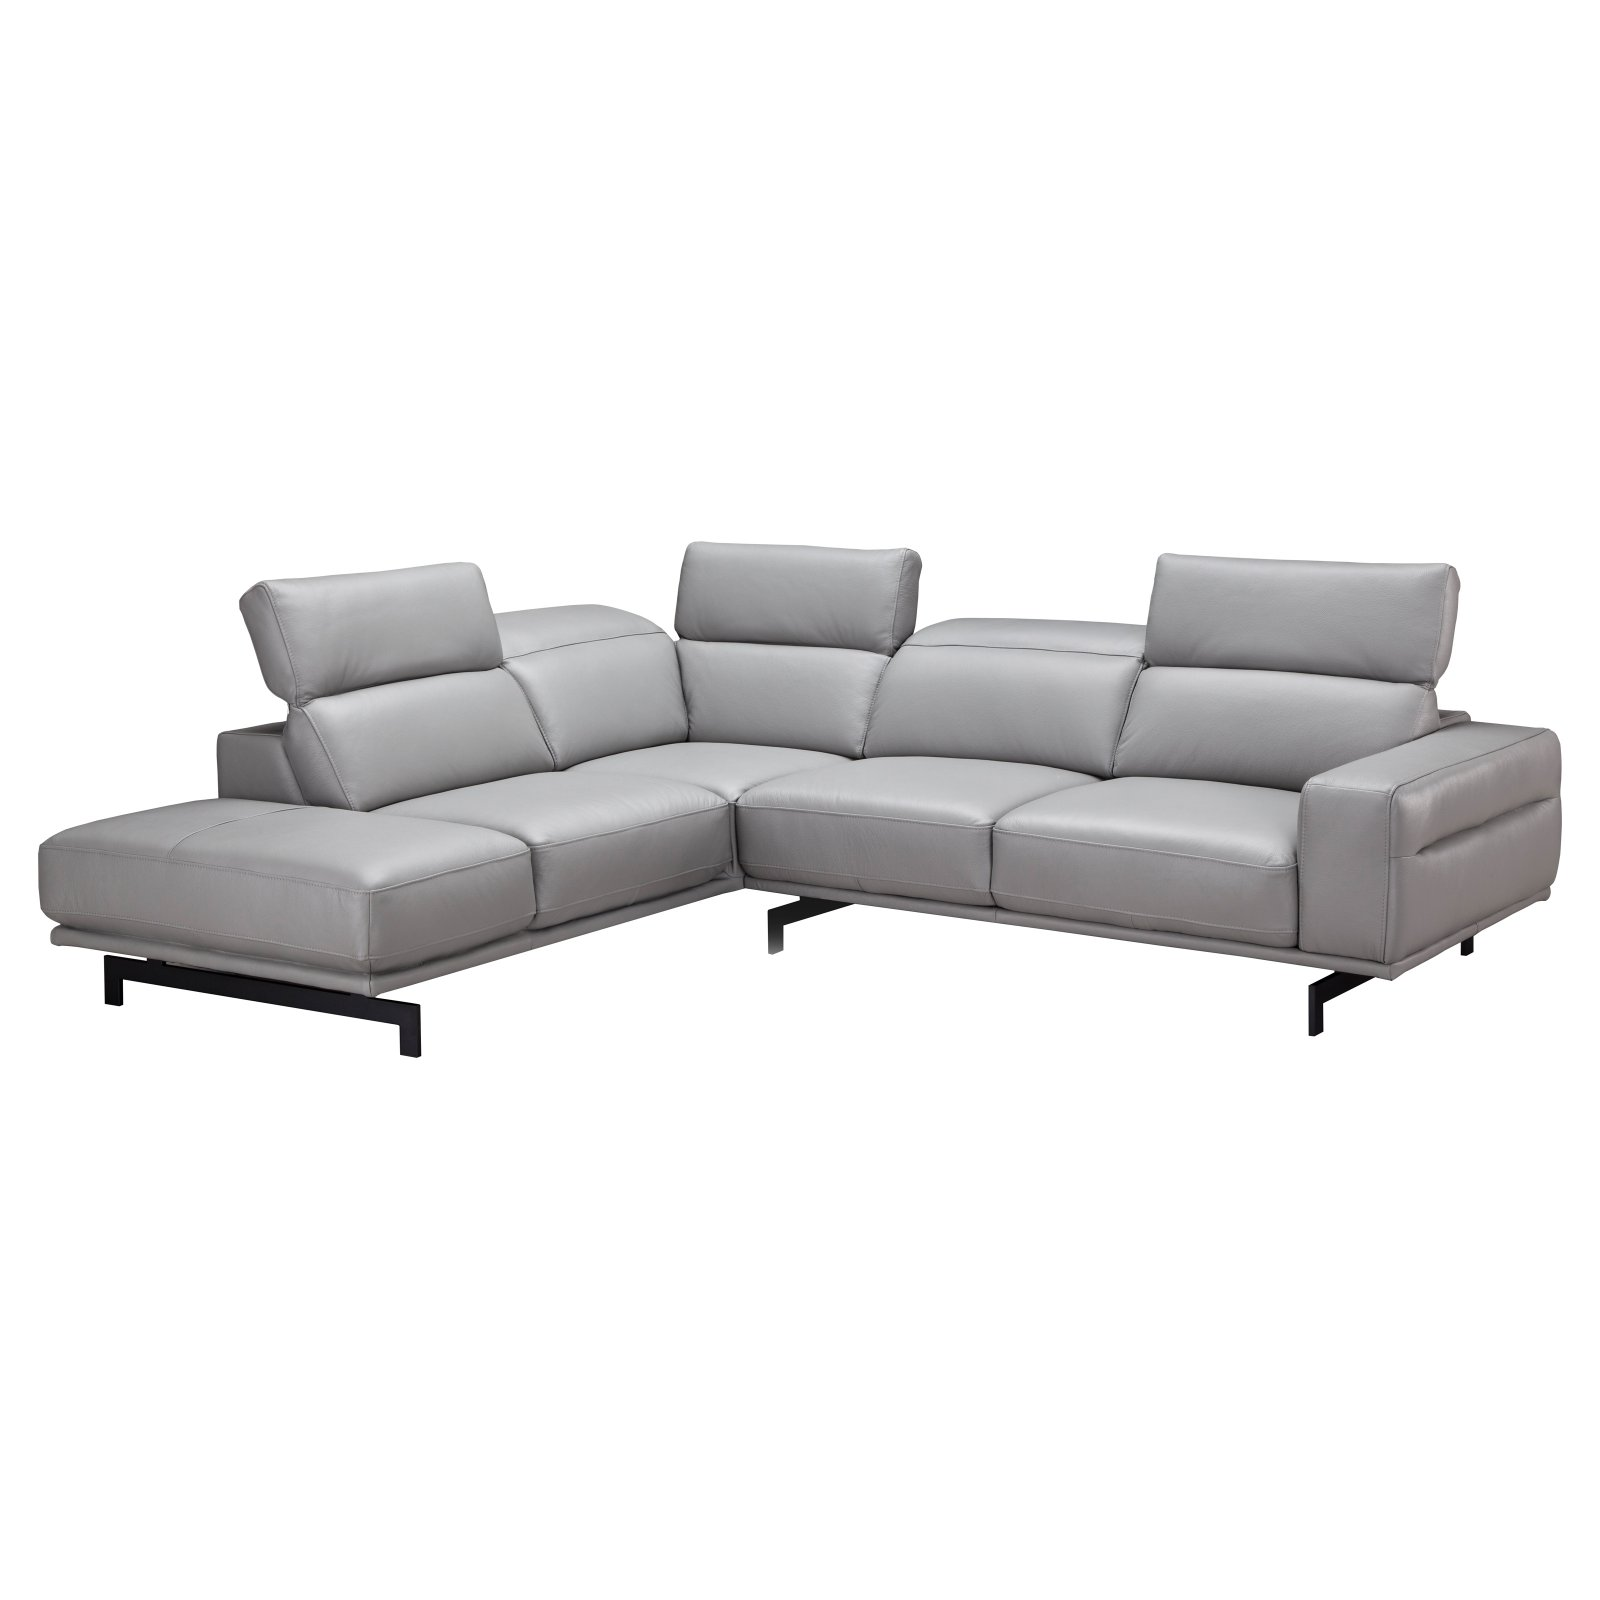 j m paquet sofa victor bed andm furniture davenport sectional walmart